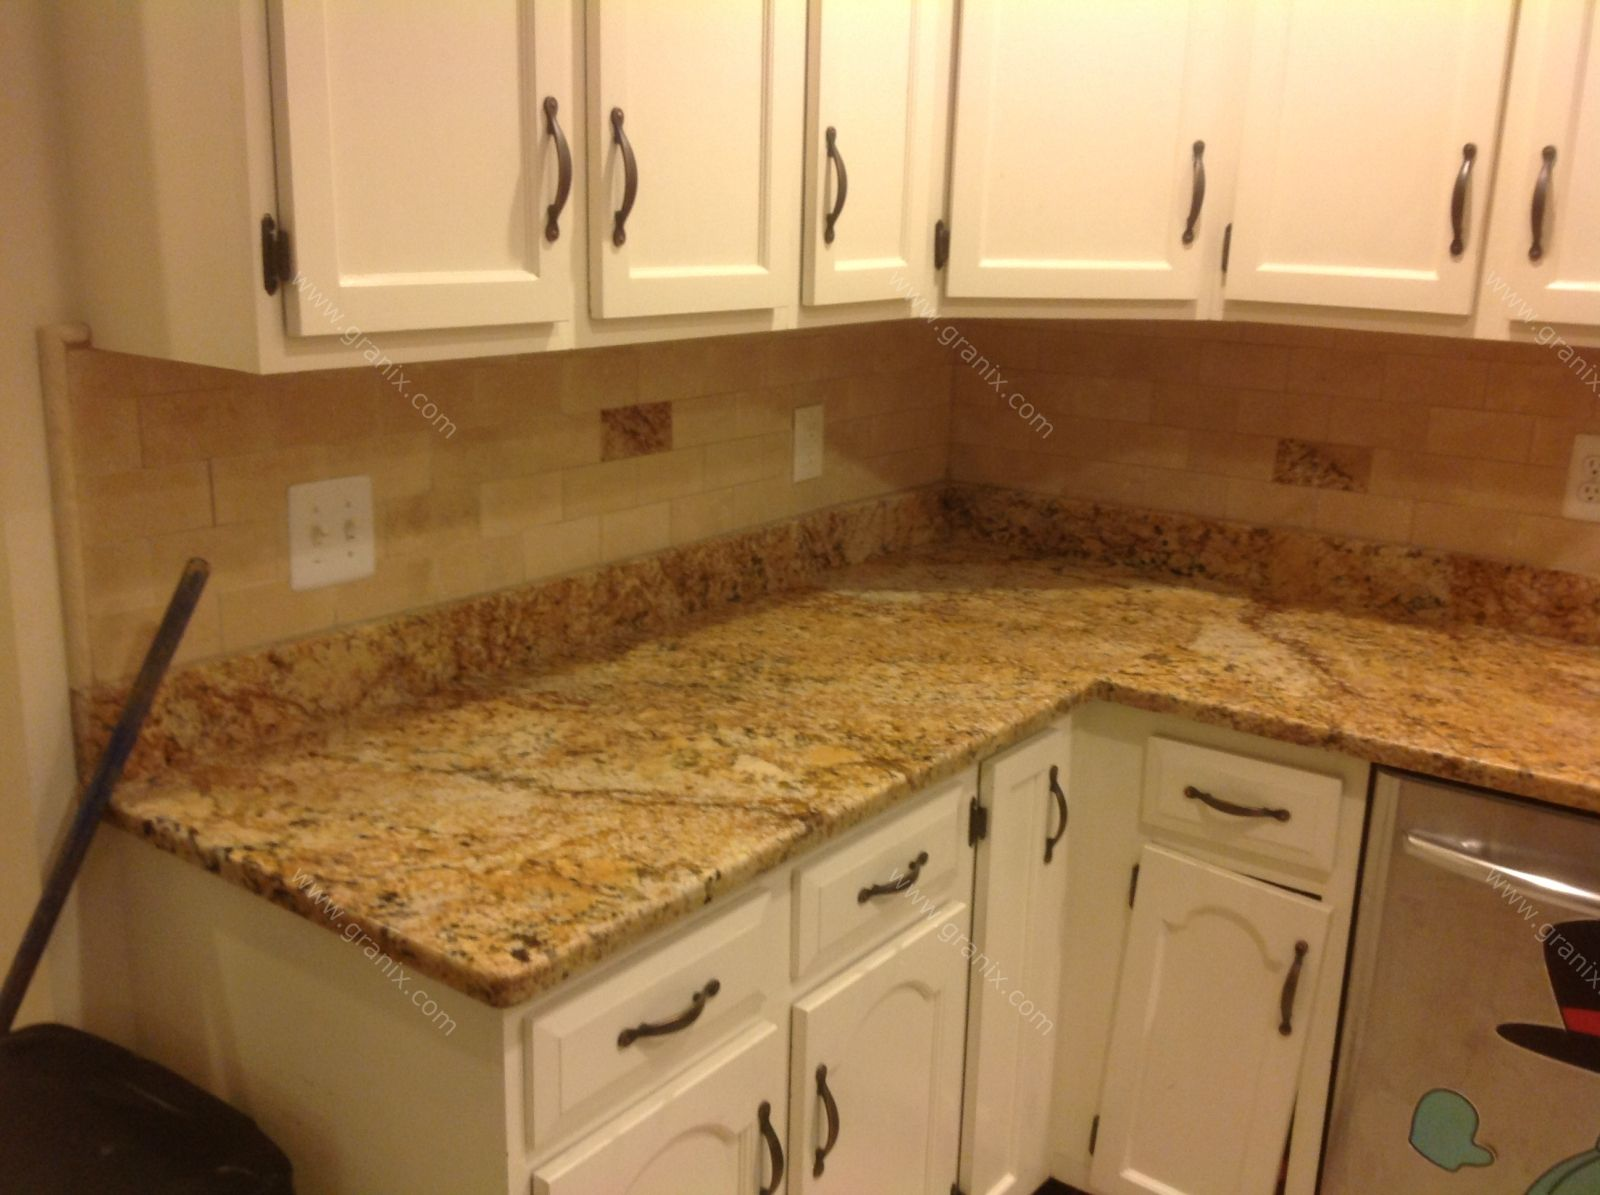 Backsplash ideas for granite countertops leave a reply Backsplash or no backsplash